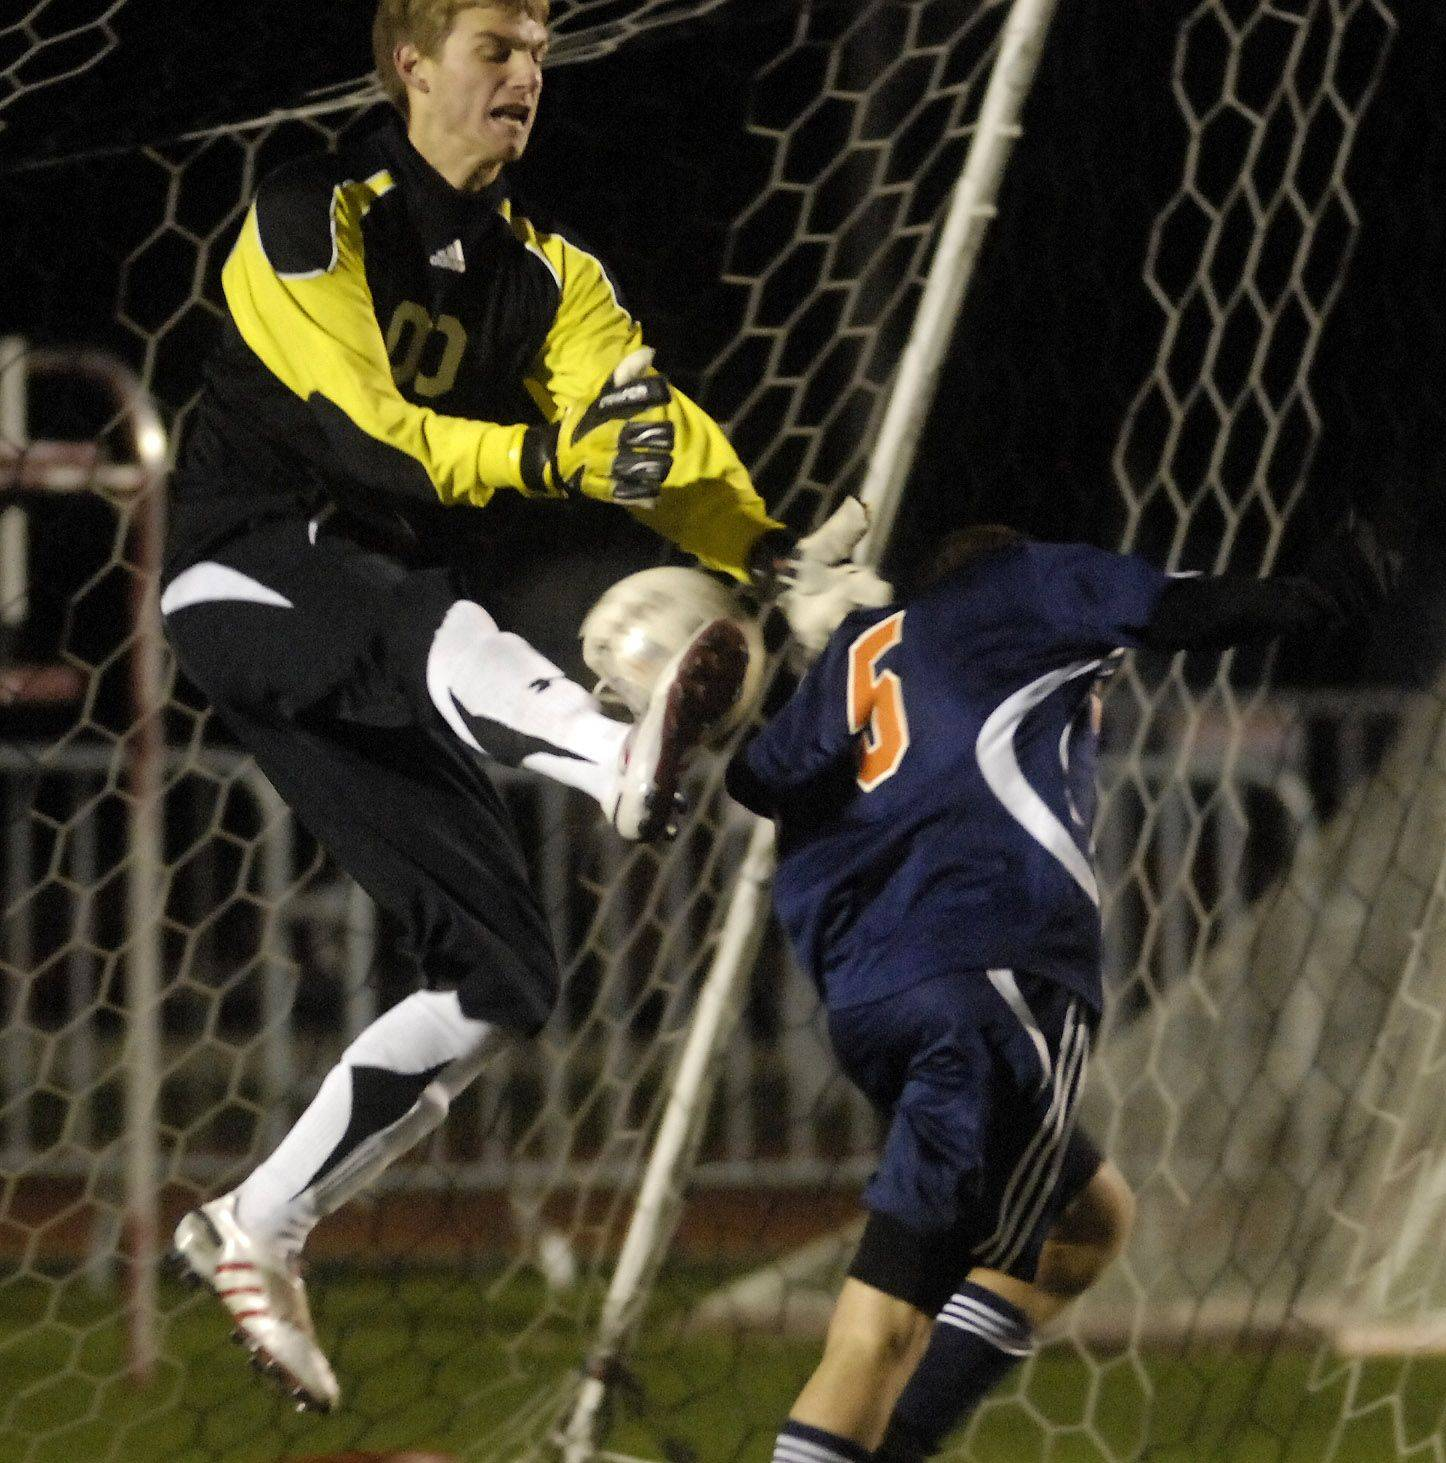 Libertyville goalkeeper Andrew Bitta beats Naperville North's Joe Sullivan to a ball in the box during Friday's 3A state soccer semifinals at North Central College in Naperville.